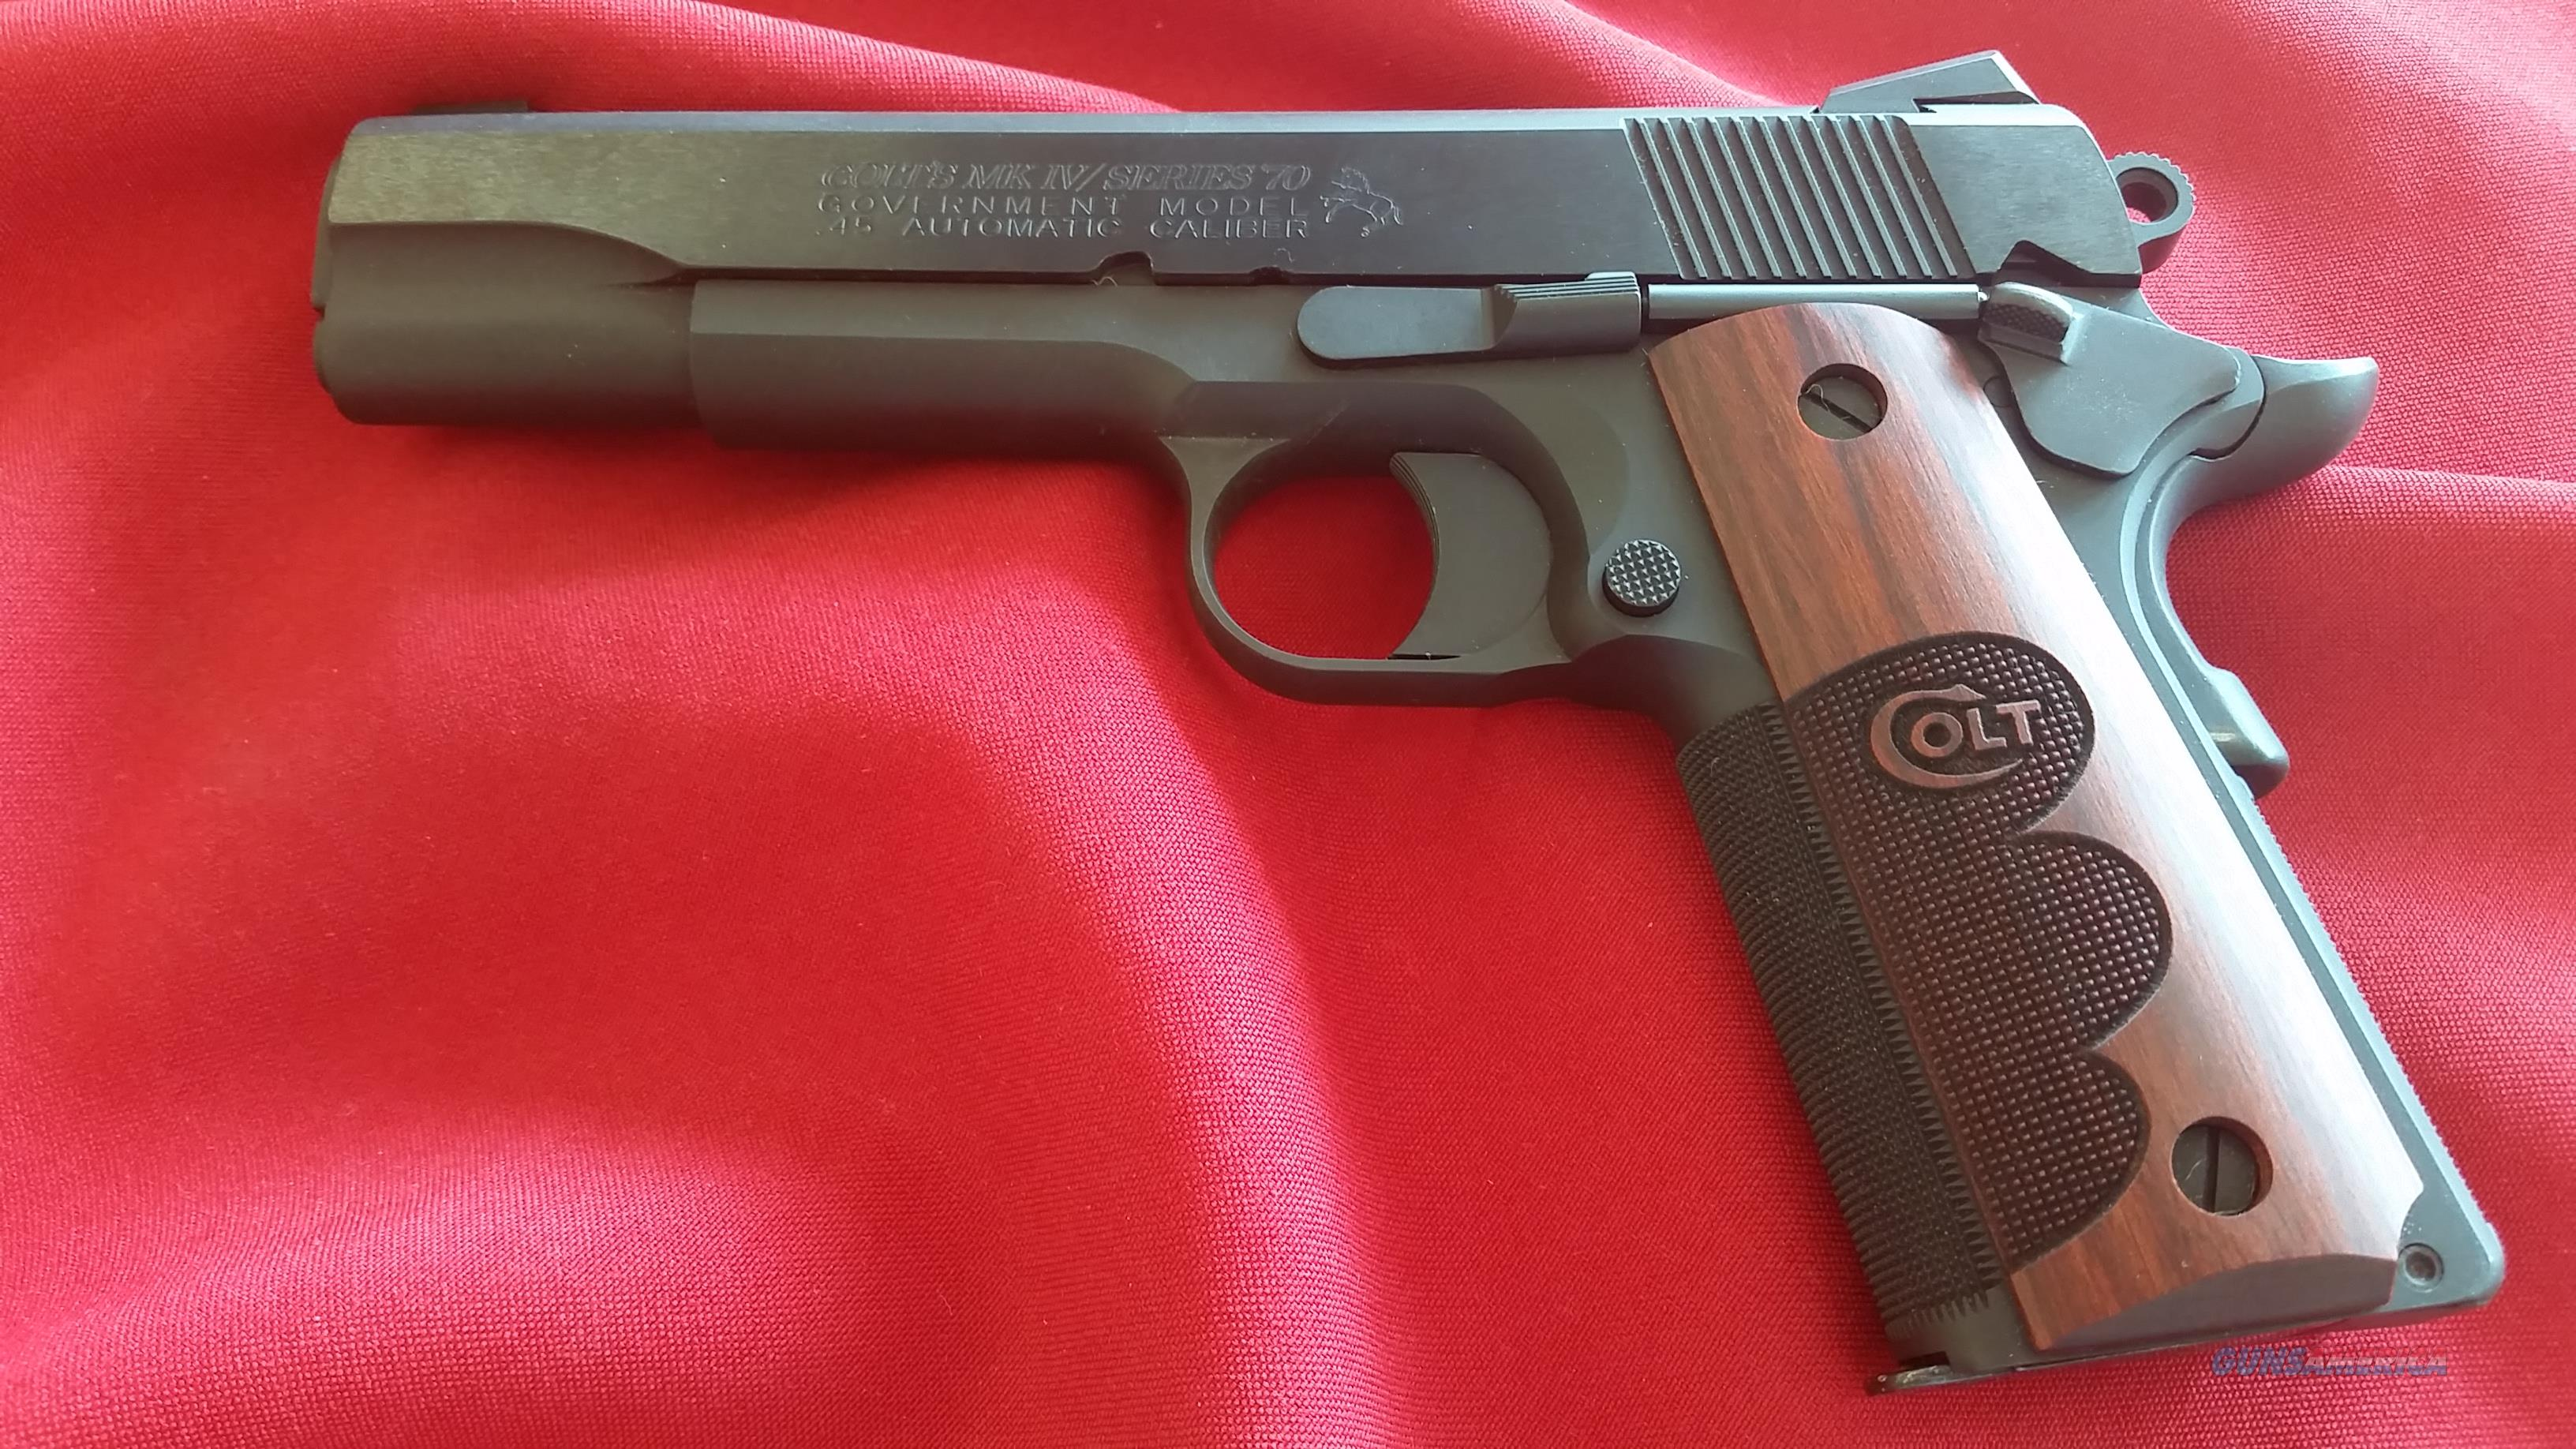 Colt Wiley Clapp Mark IV Series 70 .45 ACP Blue Finish w/ (2) 7 Round Mags                  Guns > Pistols > Colt Automatic Pistols (1911 & Var)